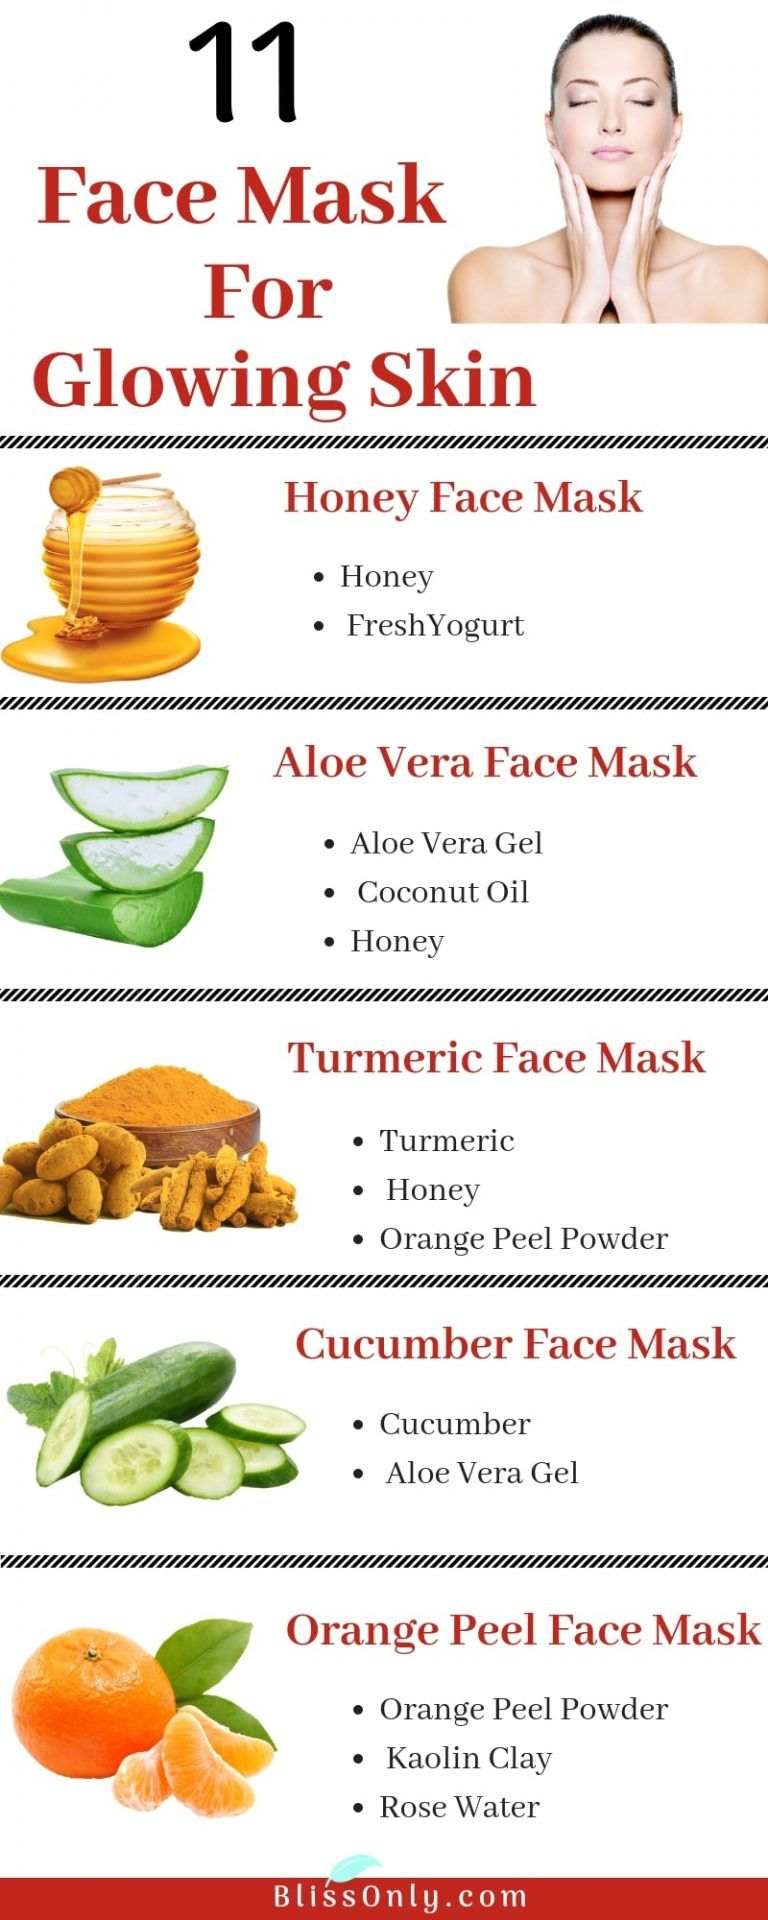 11 Simple Homemade Face Masks For Glowing Skin | Cucumber